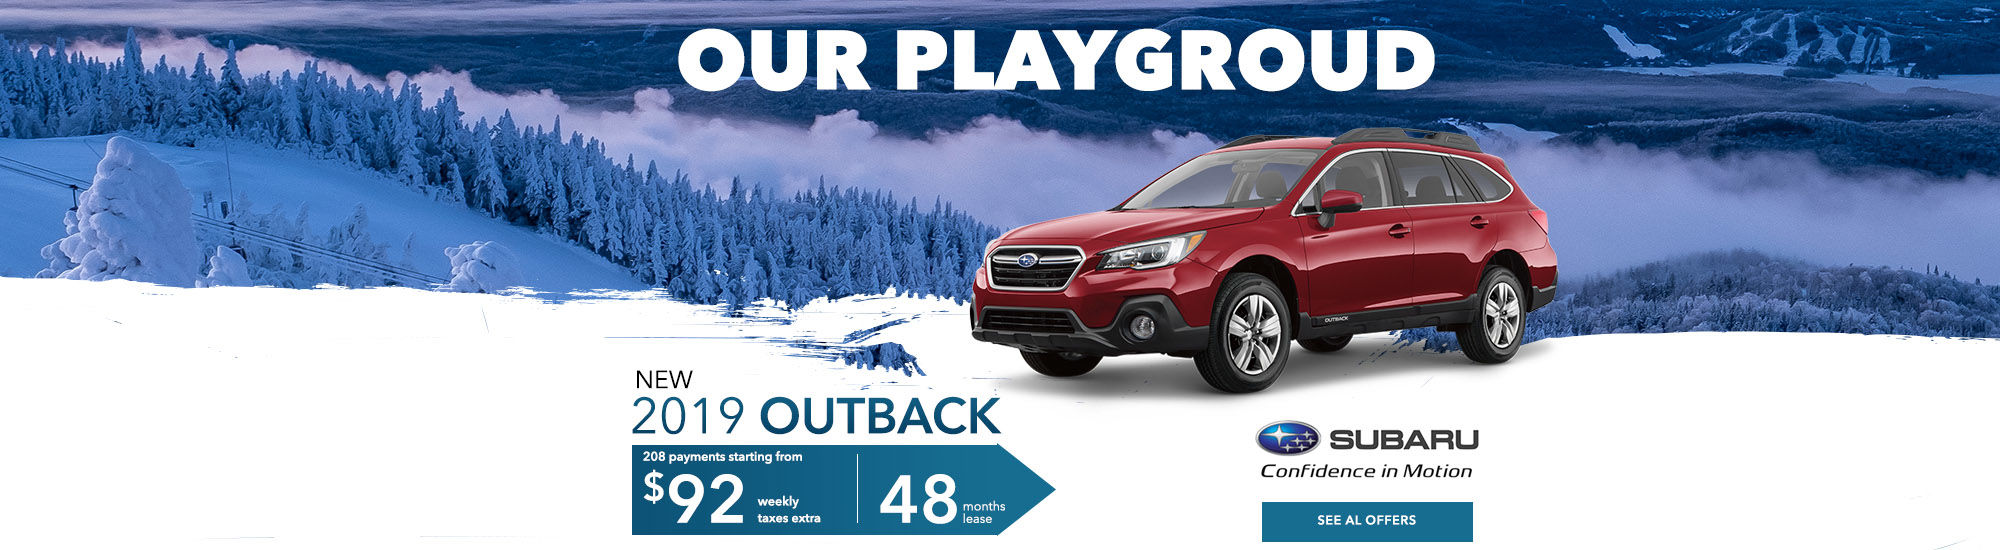 2019 Subaru outback our playgroud